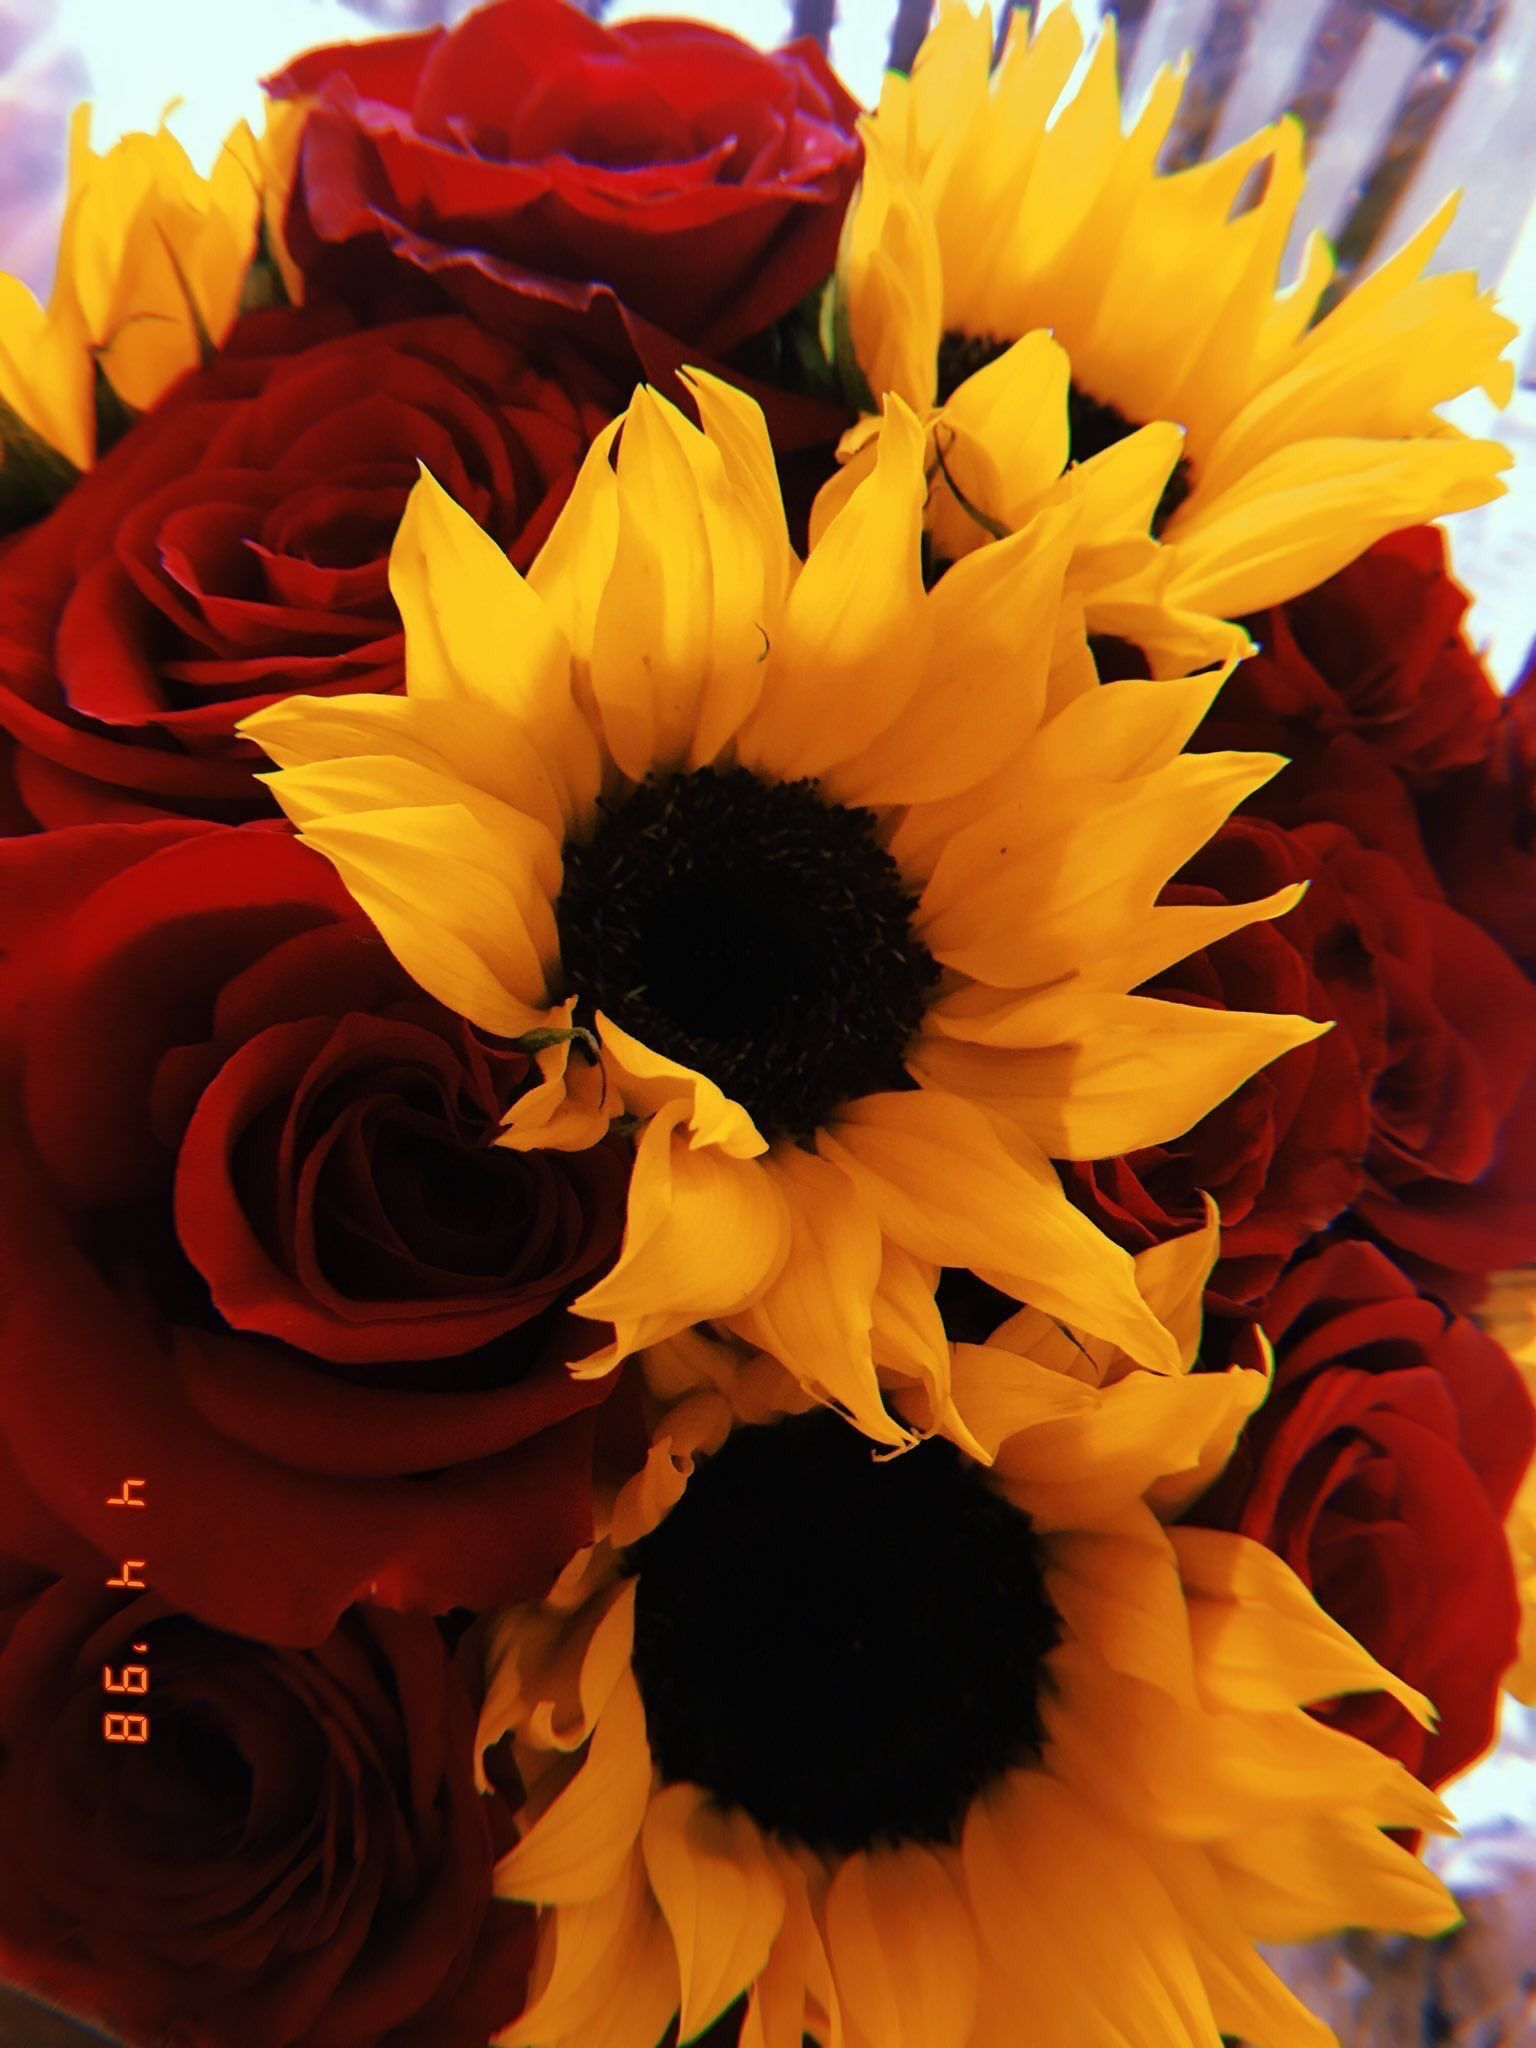 Roses And Sunflowers Background : roses, sunflowers, background, Sunflowers, Roses, 🌹🌻, Roses,, Background,, Beautiful, Flowers